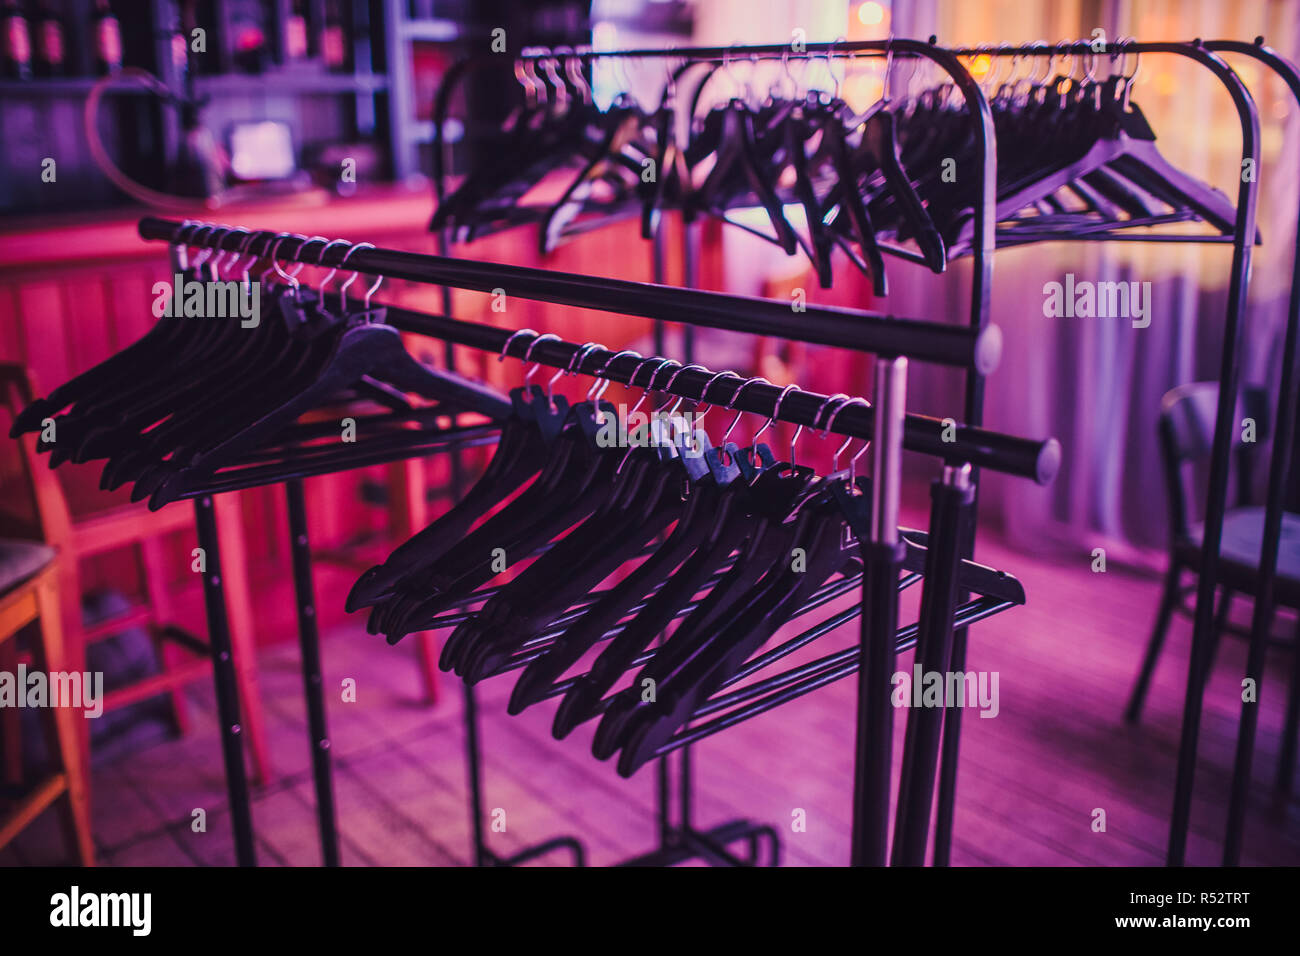 https www alamy com stock of empty clothes hanger in wardrobe wooden coat hangers hanging on a cloth rail rack in closet hotel bedroom abstract for show of suits shop after clearance sales image226871452 html